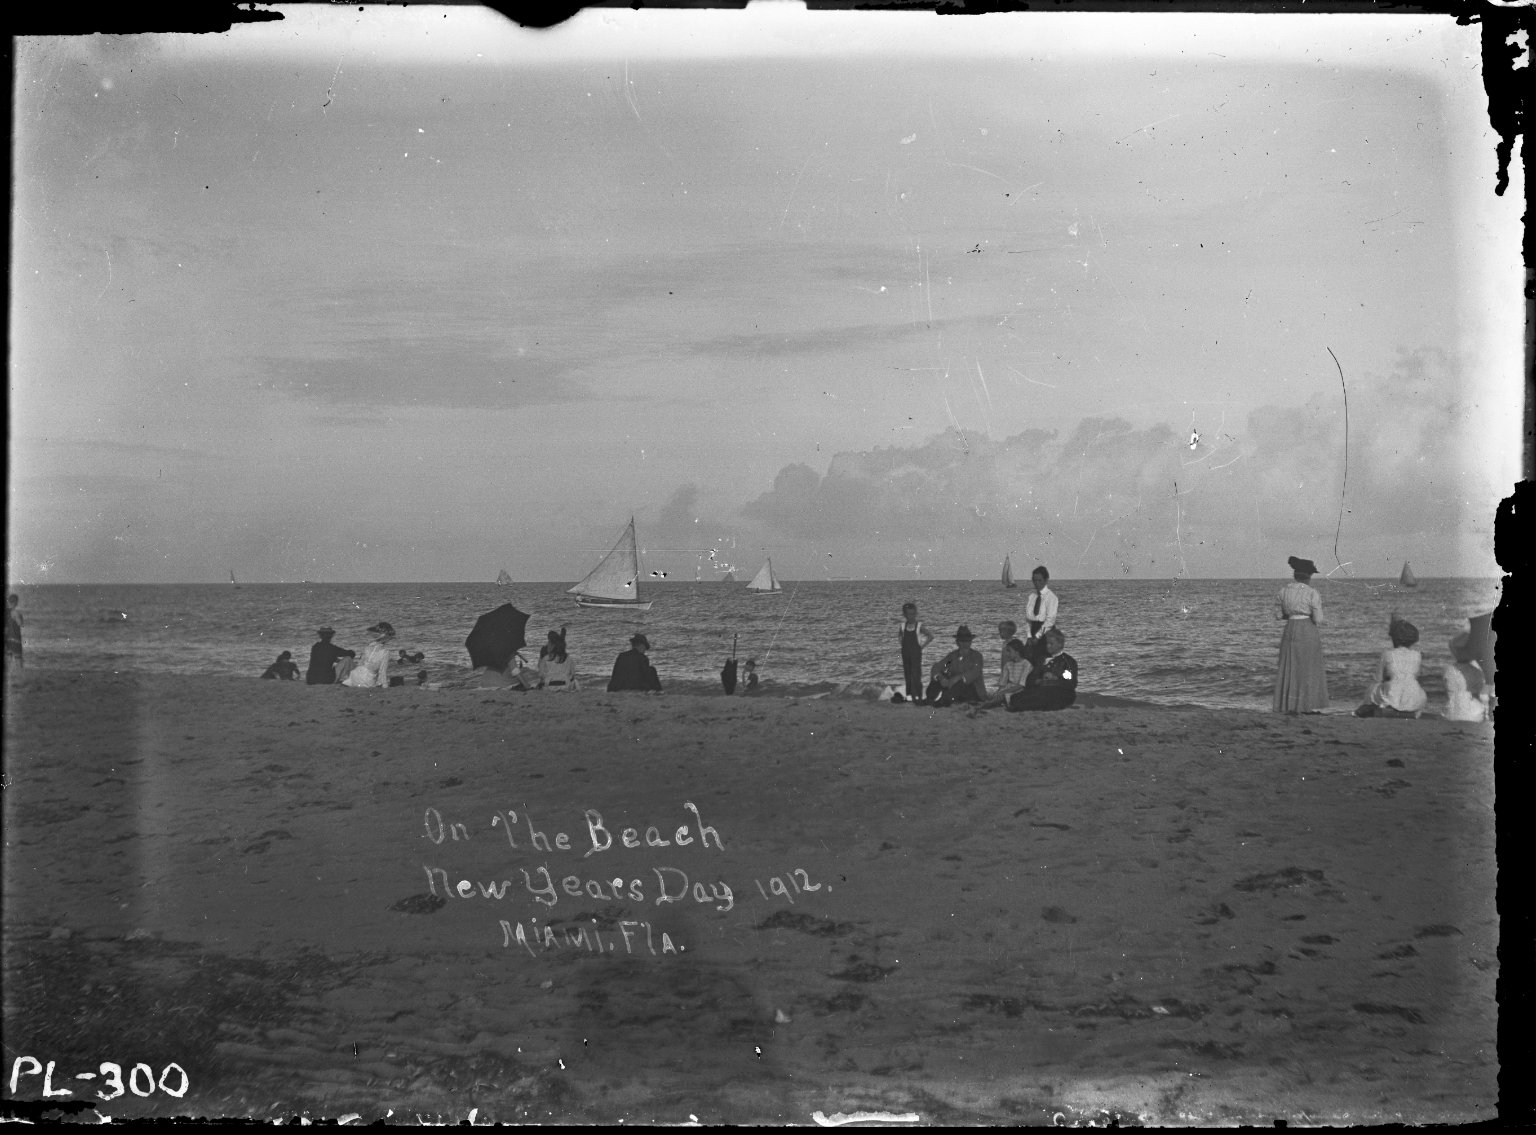 New Year's Day at Beach, 1912